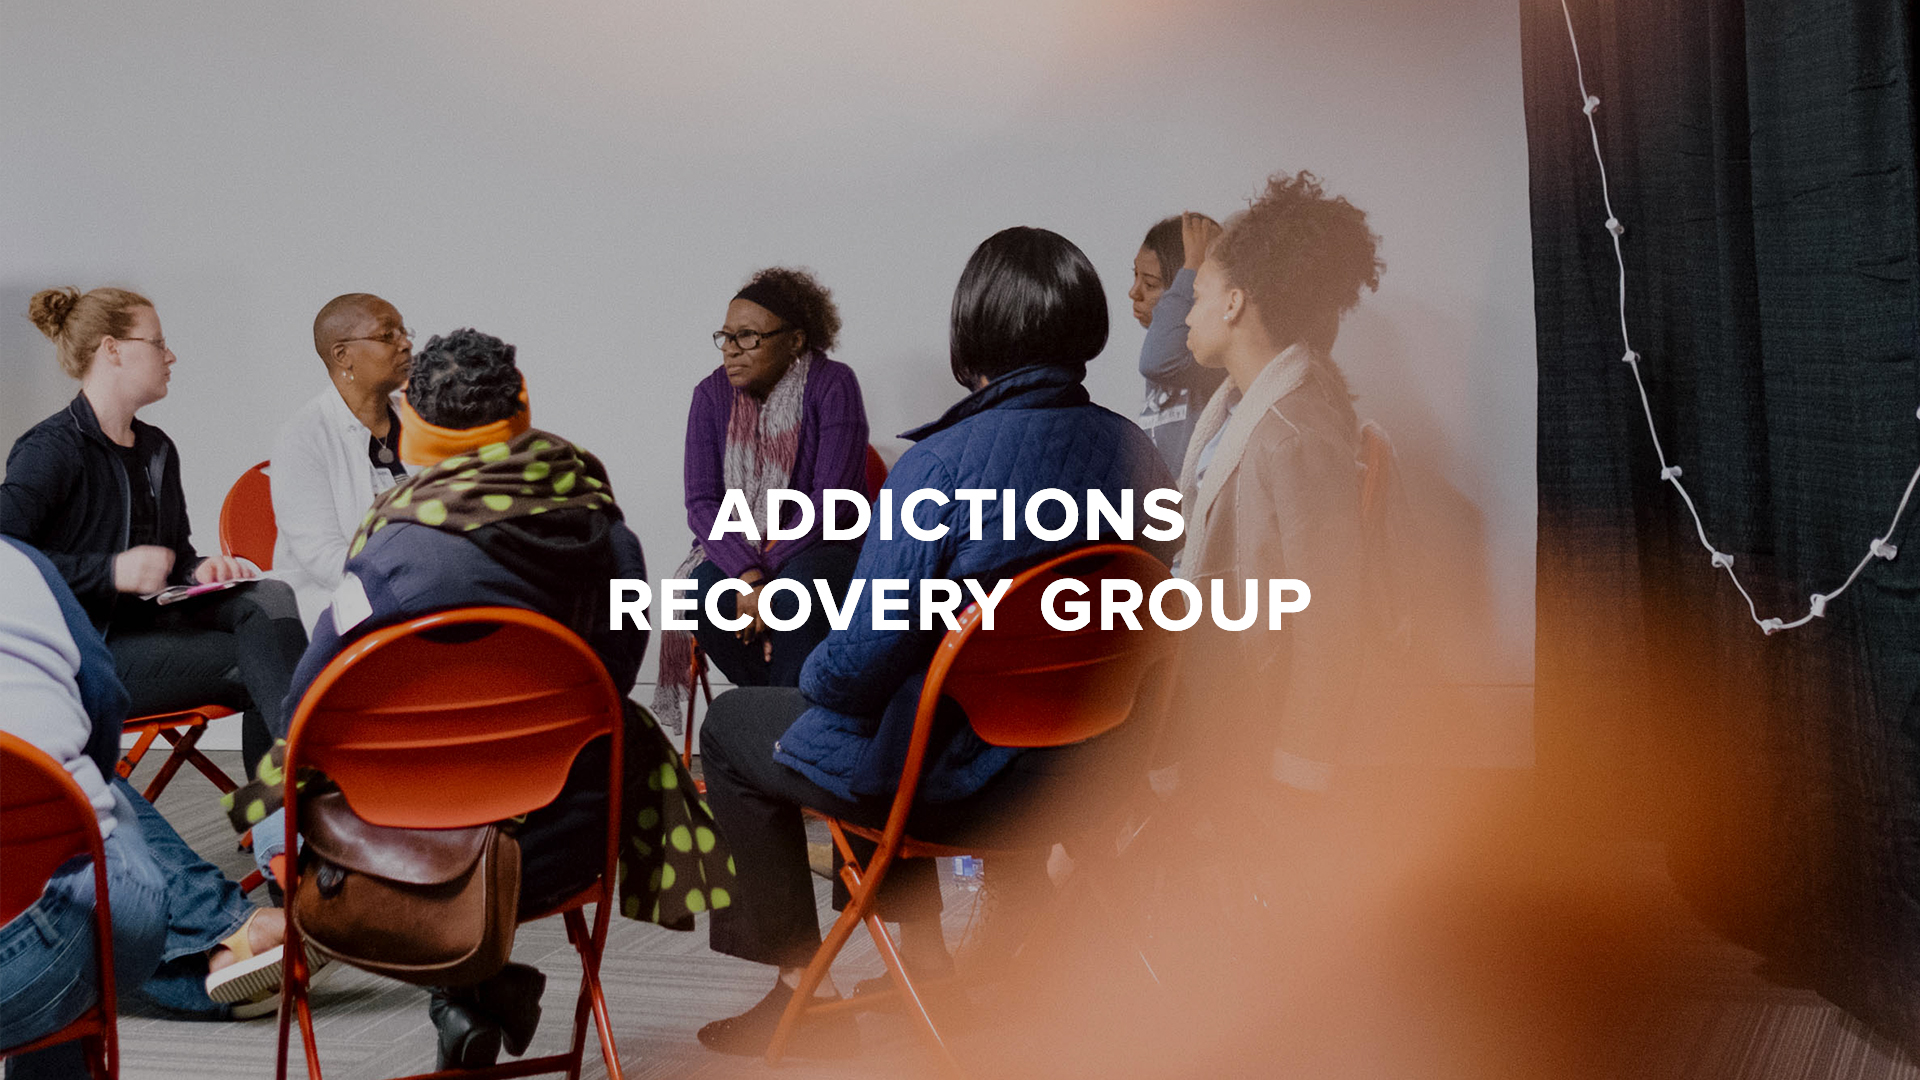 Care & Recovery - Parkview Community Church